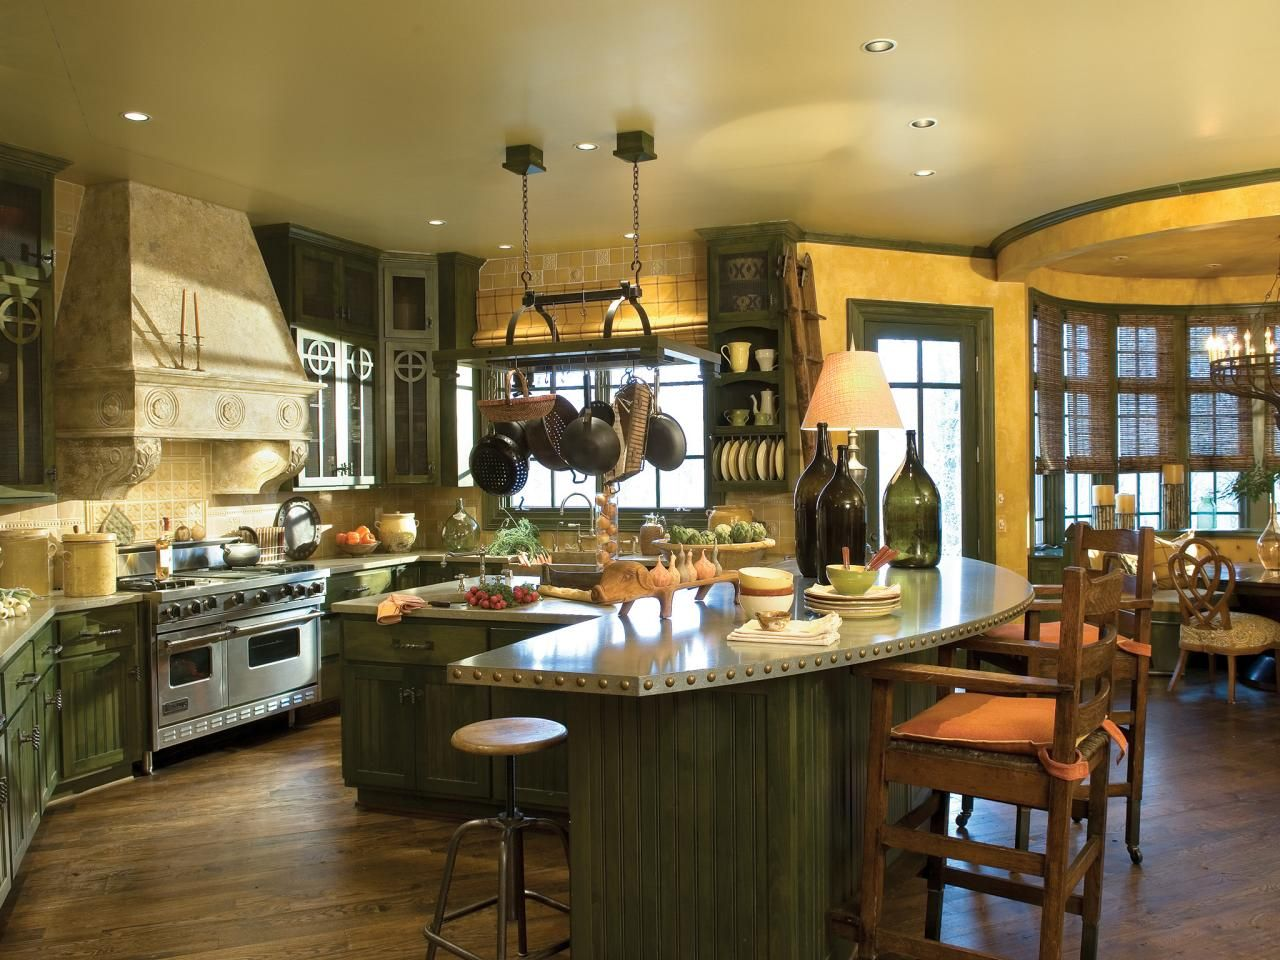 Kitchen Islands With Seating: Pictures & Ideas From | Islas de ...